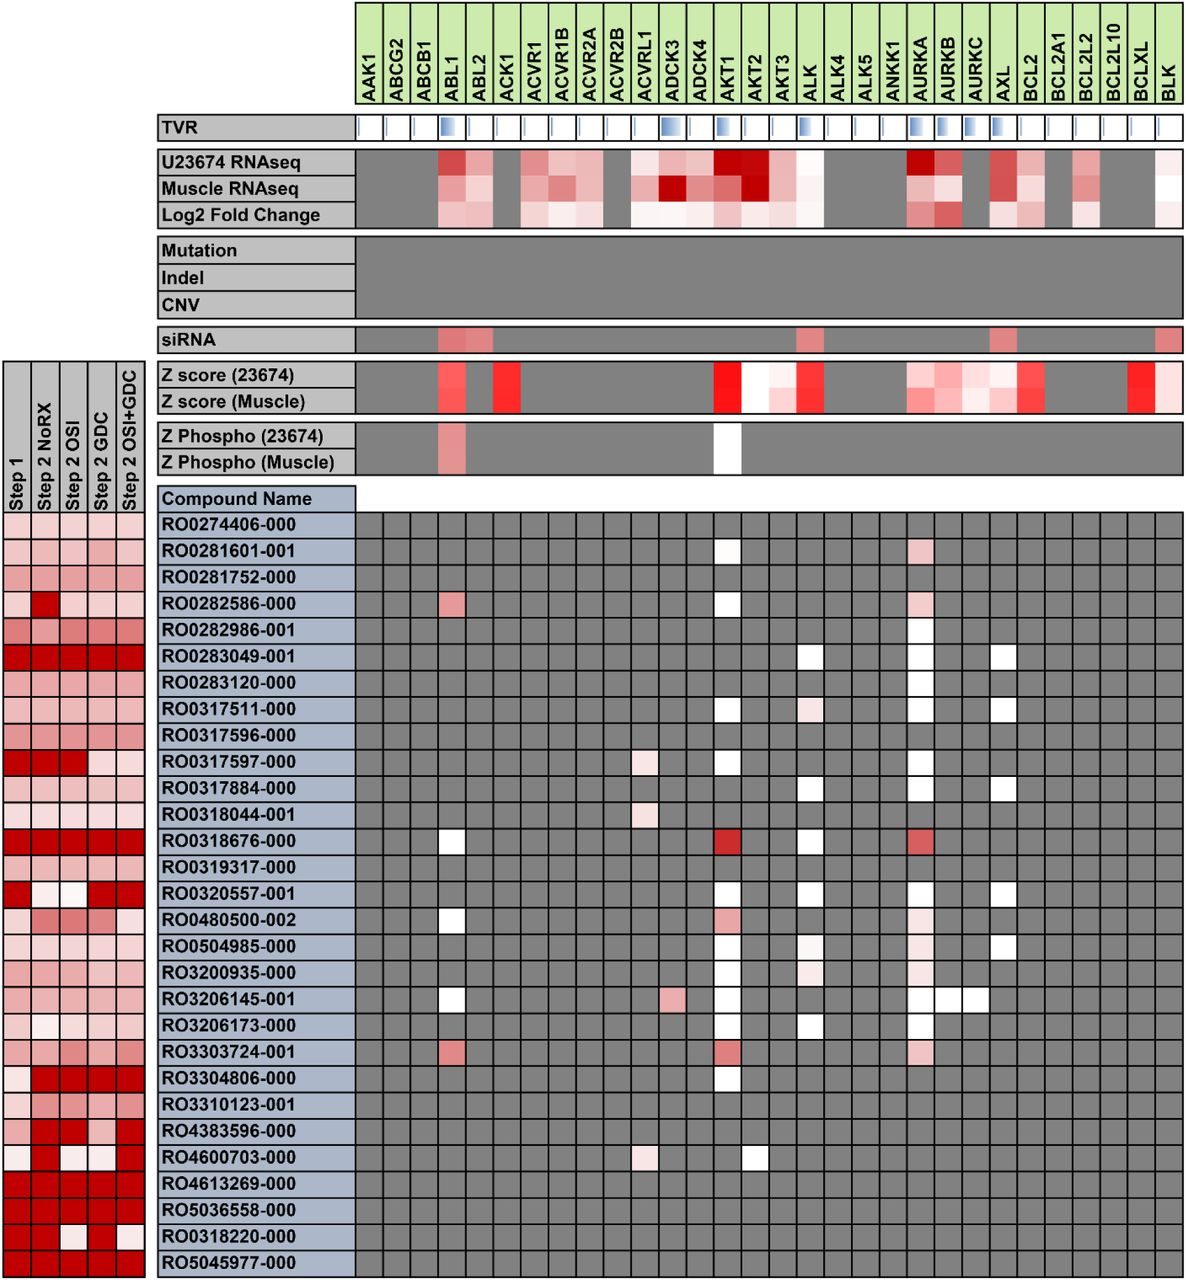 Probabilistic modeling of personalized drug combinations